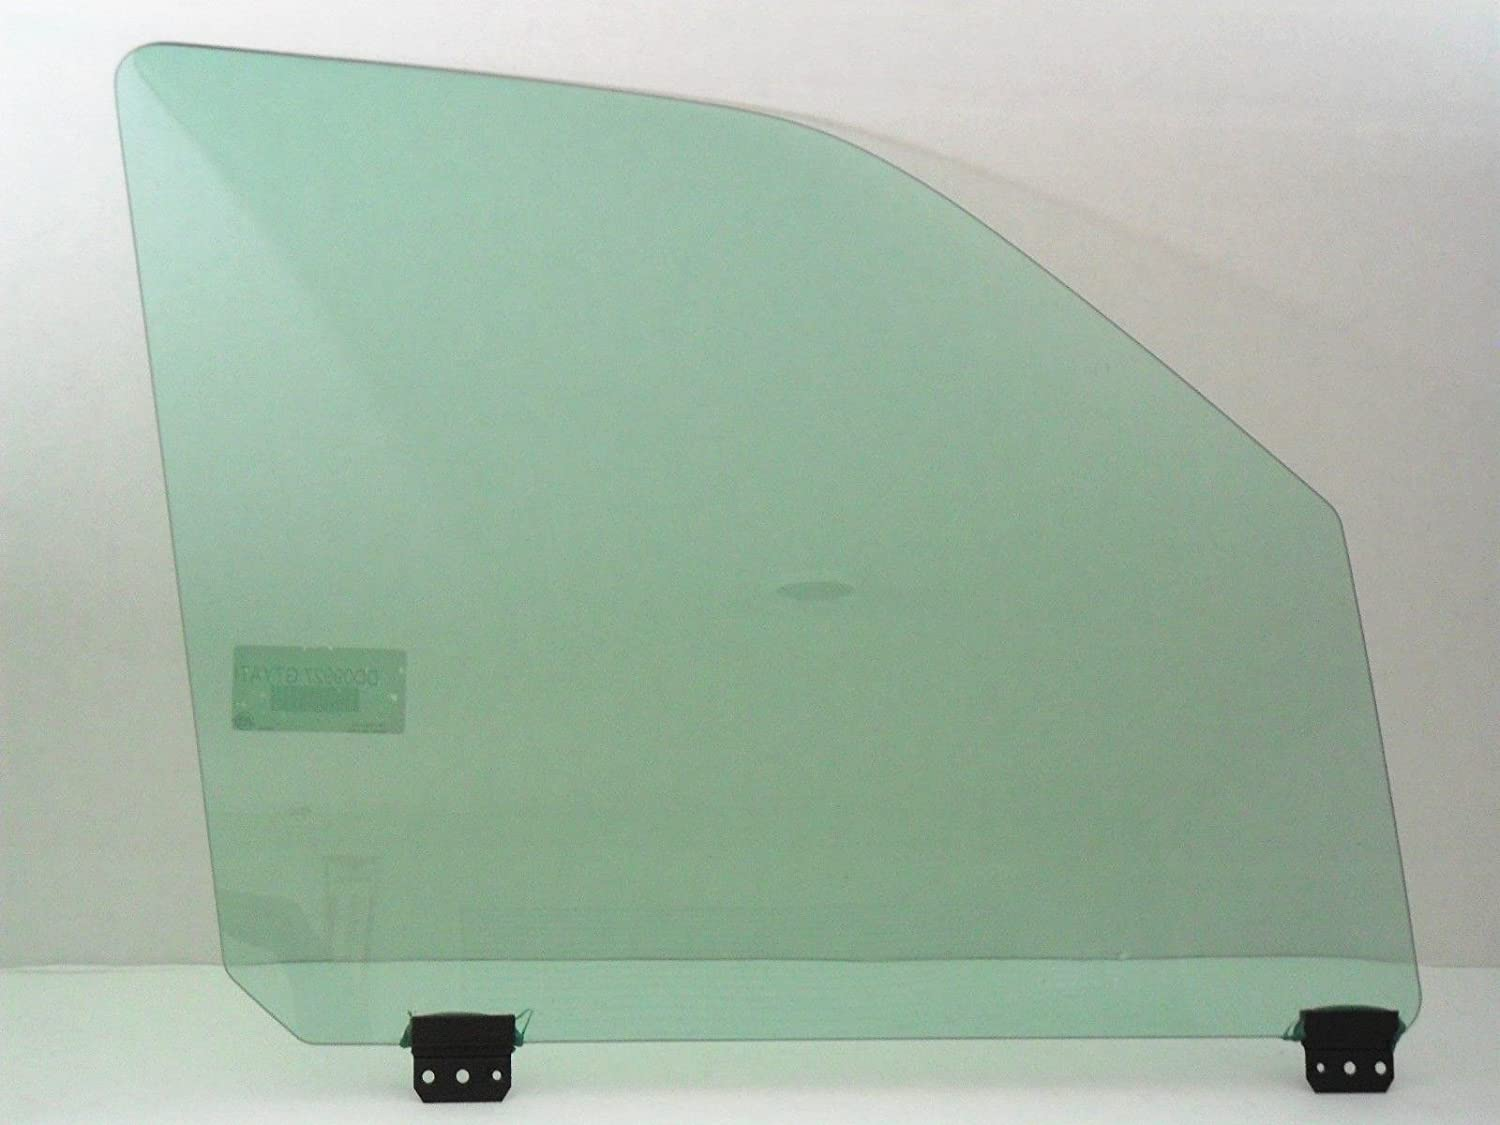 NAGD Fits 2003-2006 Ford Expedition 4 Door SUV Passenger Side Right Front Door Window Glass